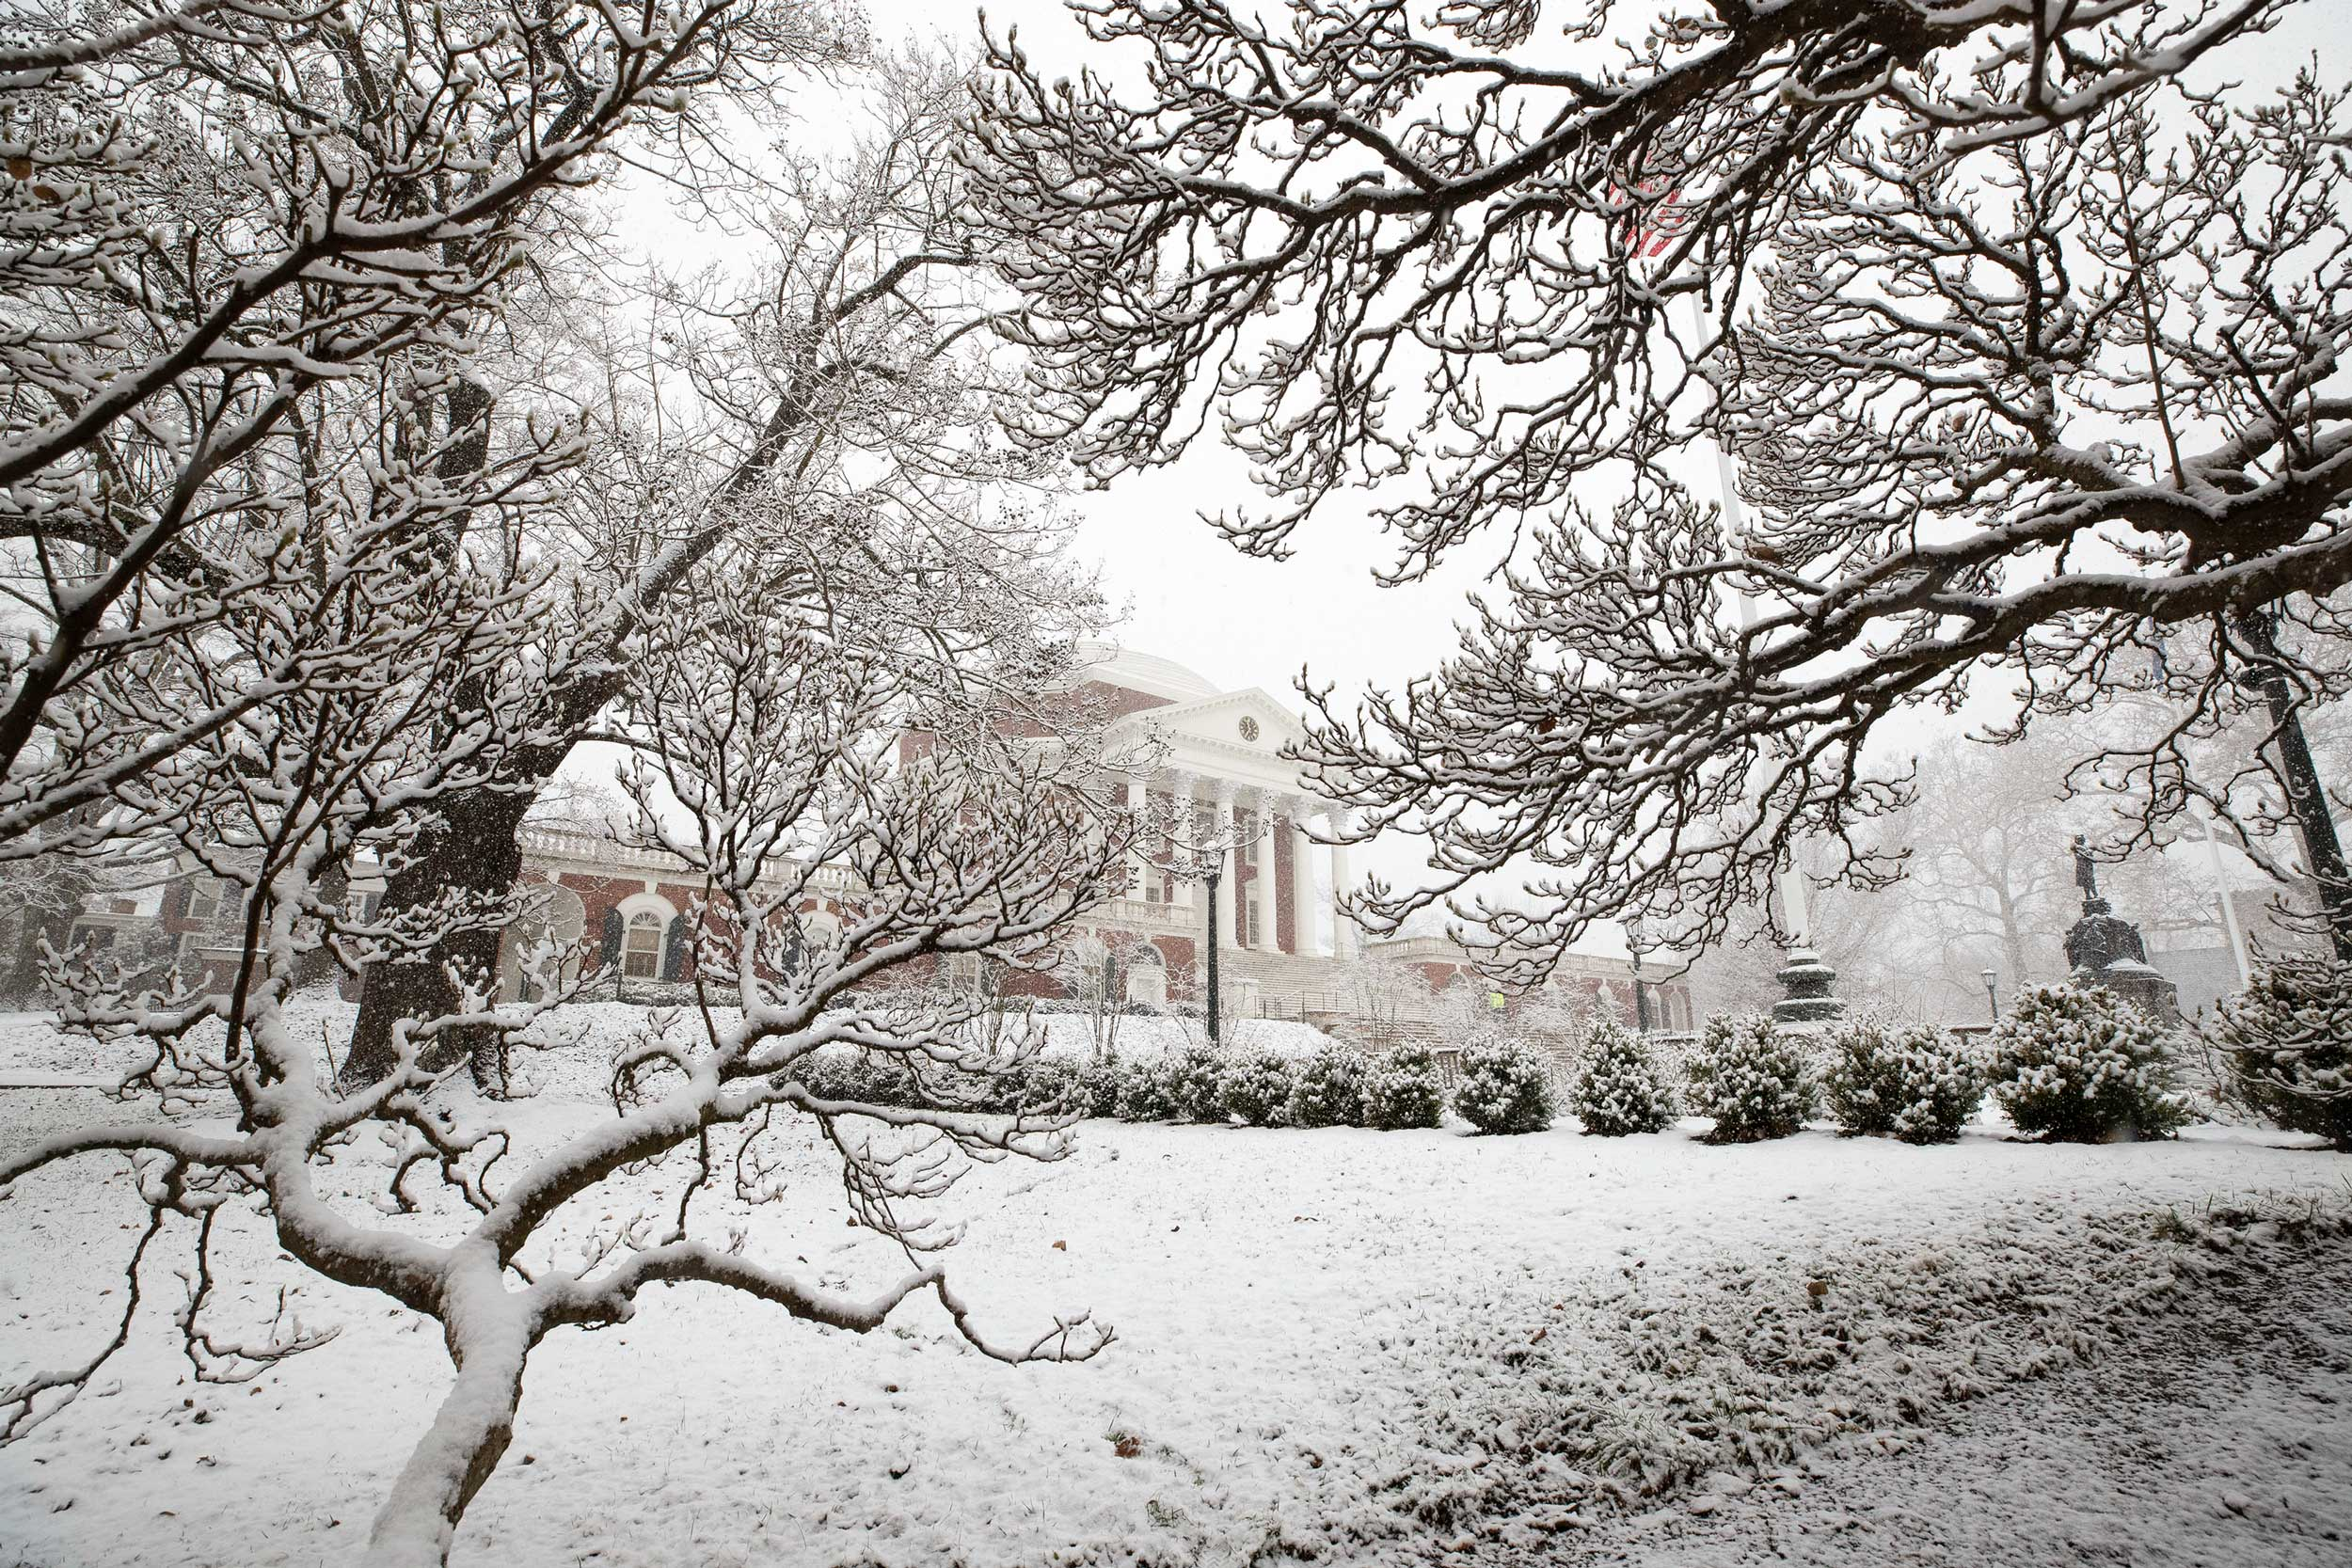 Flakes coated the twisting limbs of this tree near the Rotunda.